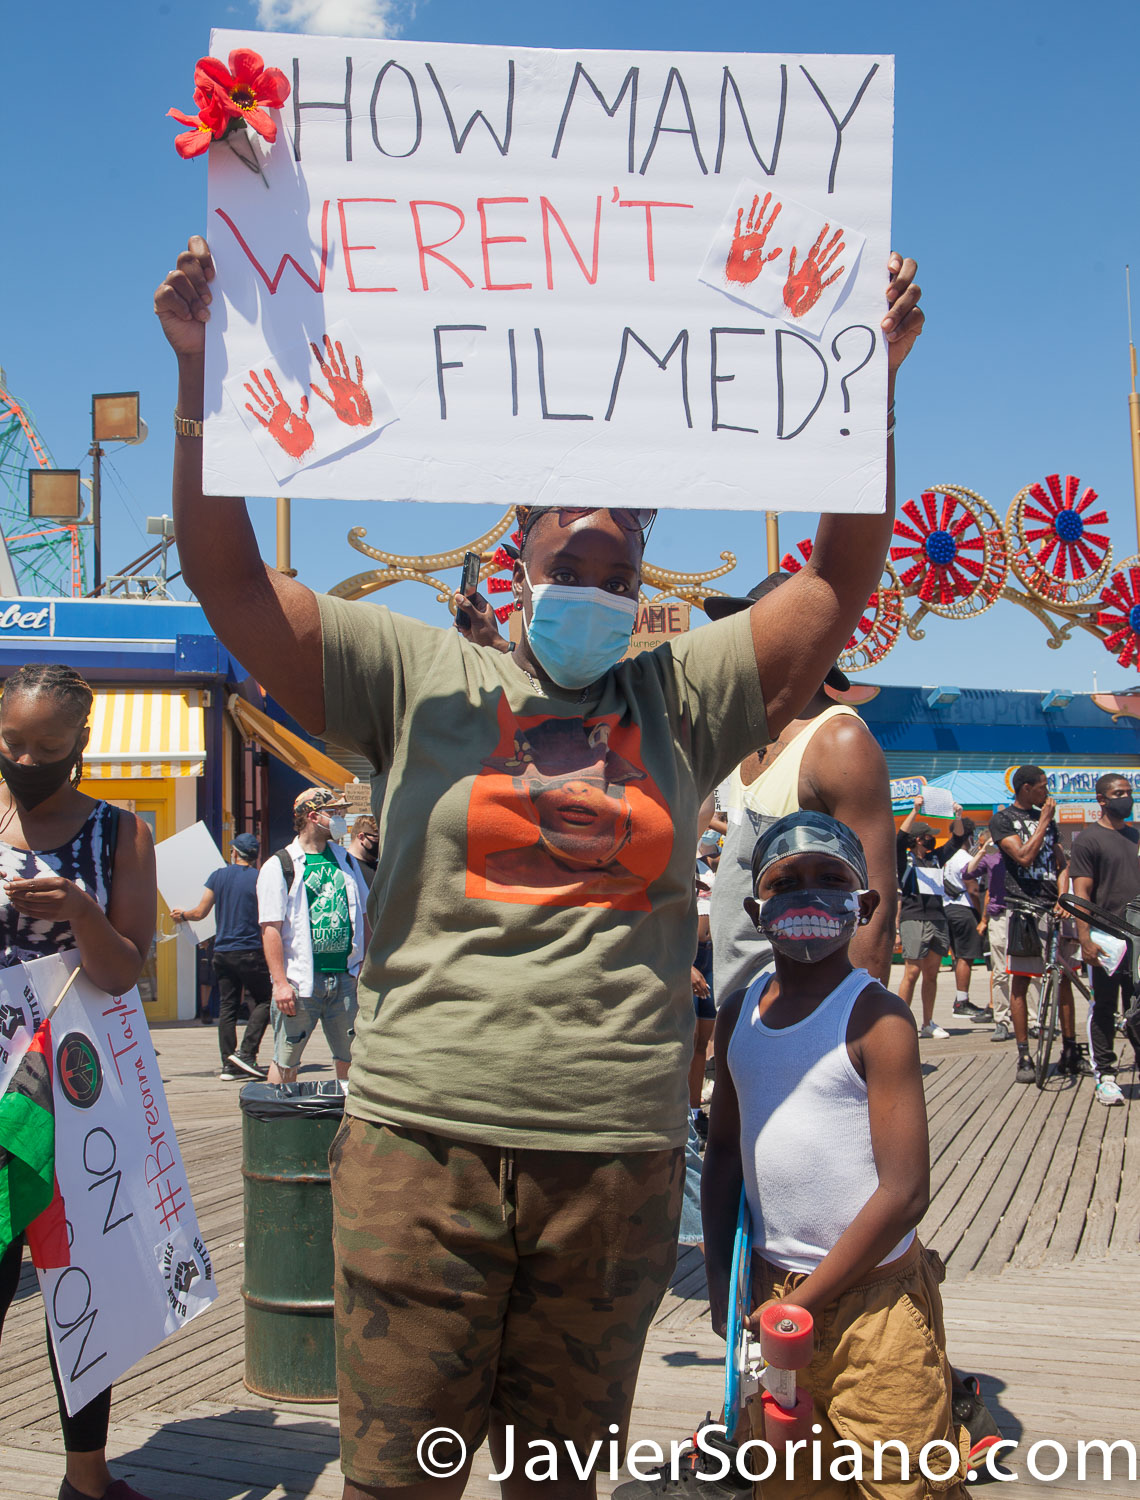 """Friday, June 12, 2020. Brooklyn, New York City - Rally and march in Coney Island. Protestors said it was a """"Peaceful demonstration for George Floyd, Breonna Taylor and the many other victims of police brutality."""" Photo by Javier Soriano/www.JavierSoriano.com"""